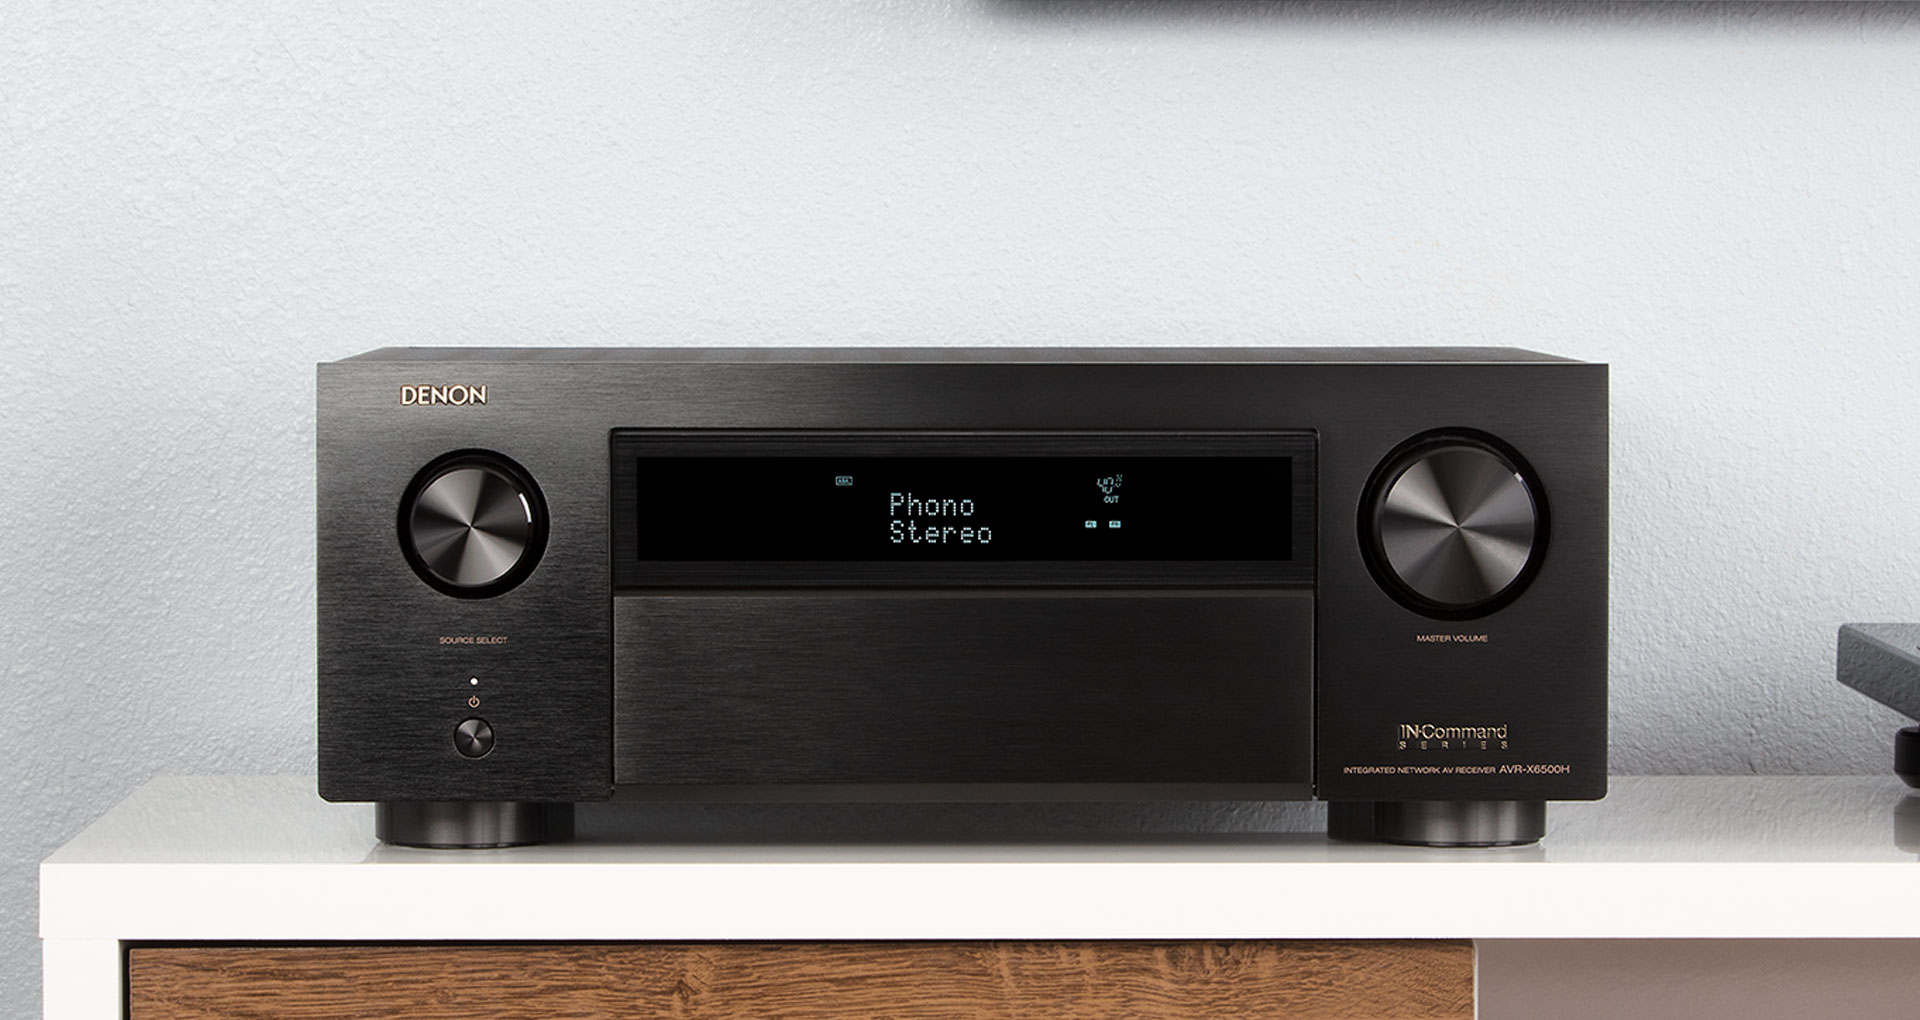 AMPLIFY YOUR DENON PRODUCTS WITH AIRPLAY 2